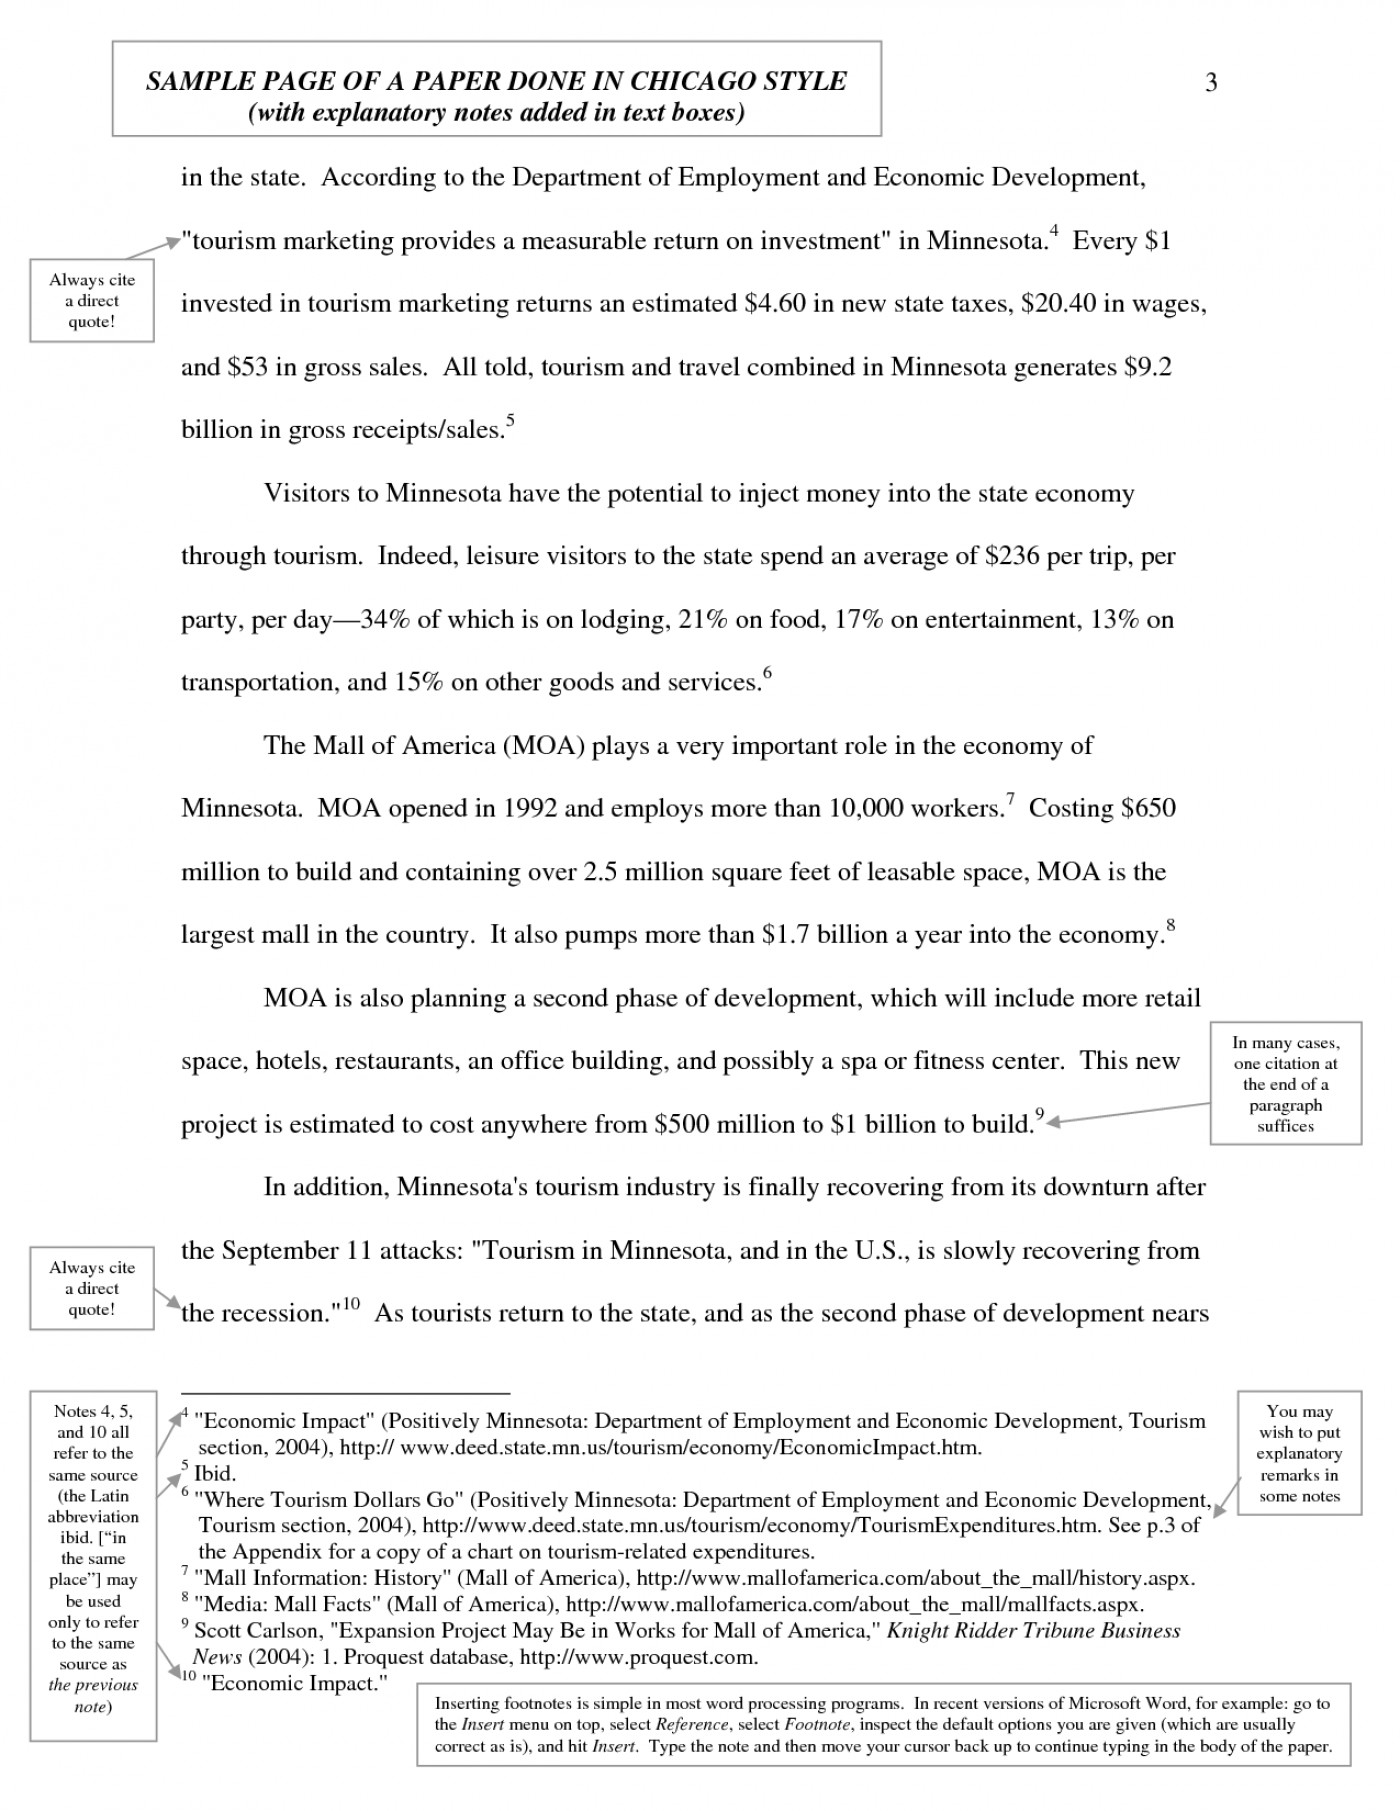 004 Research Paper Chicago Style In Text Citation Sample